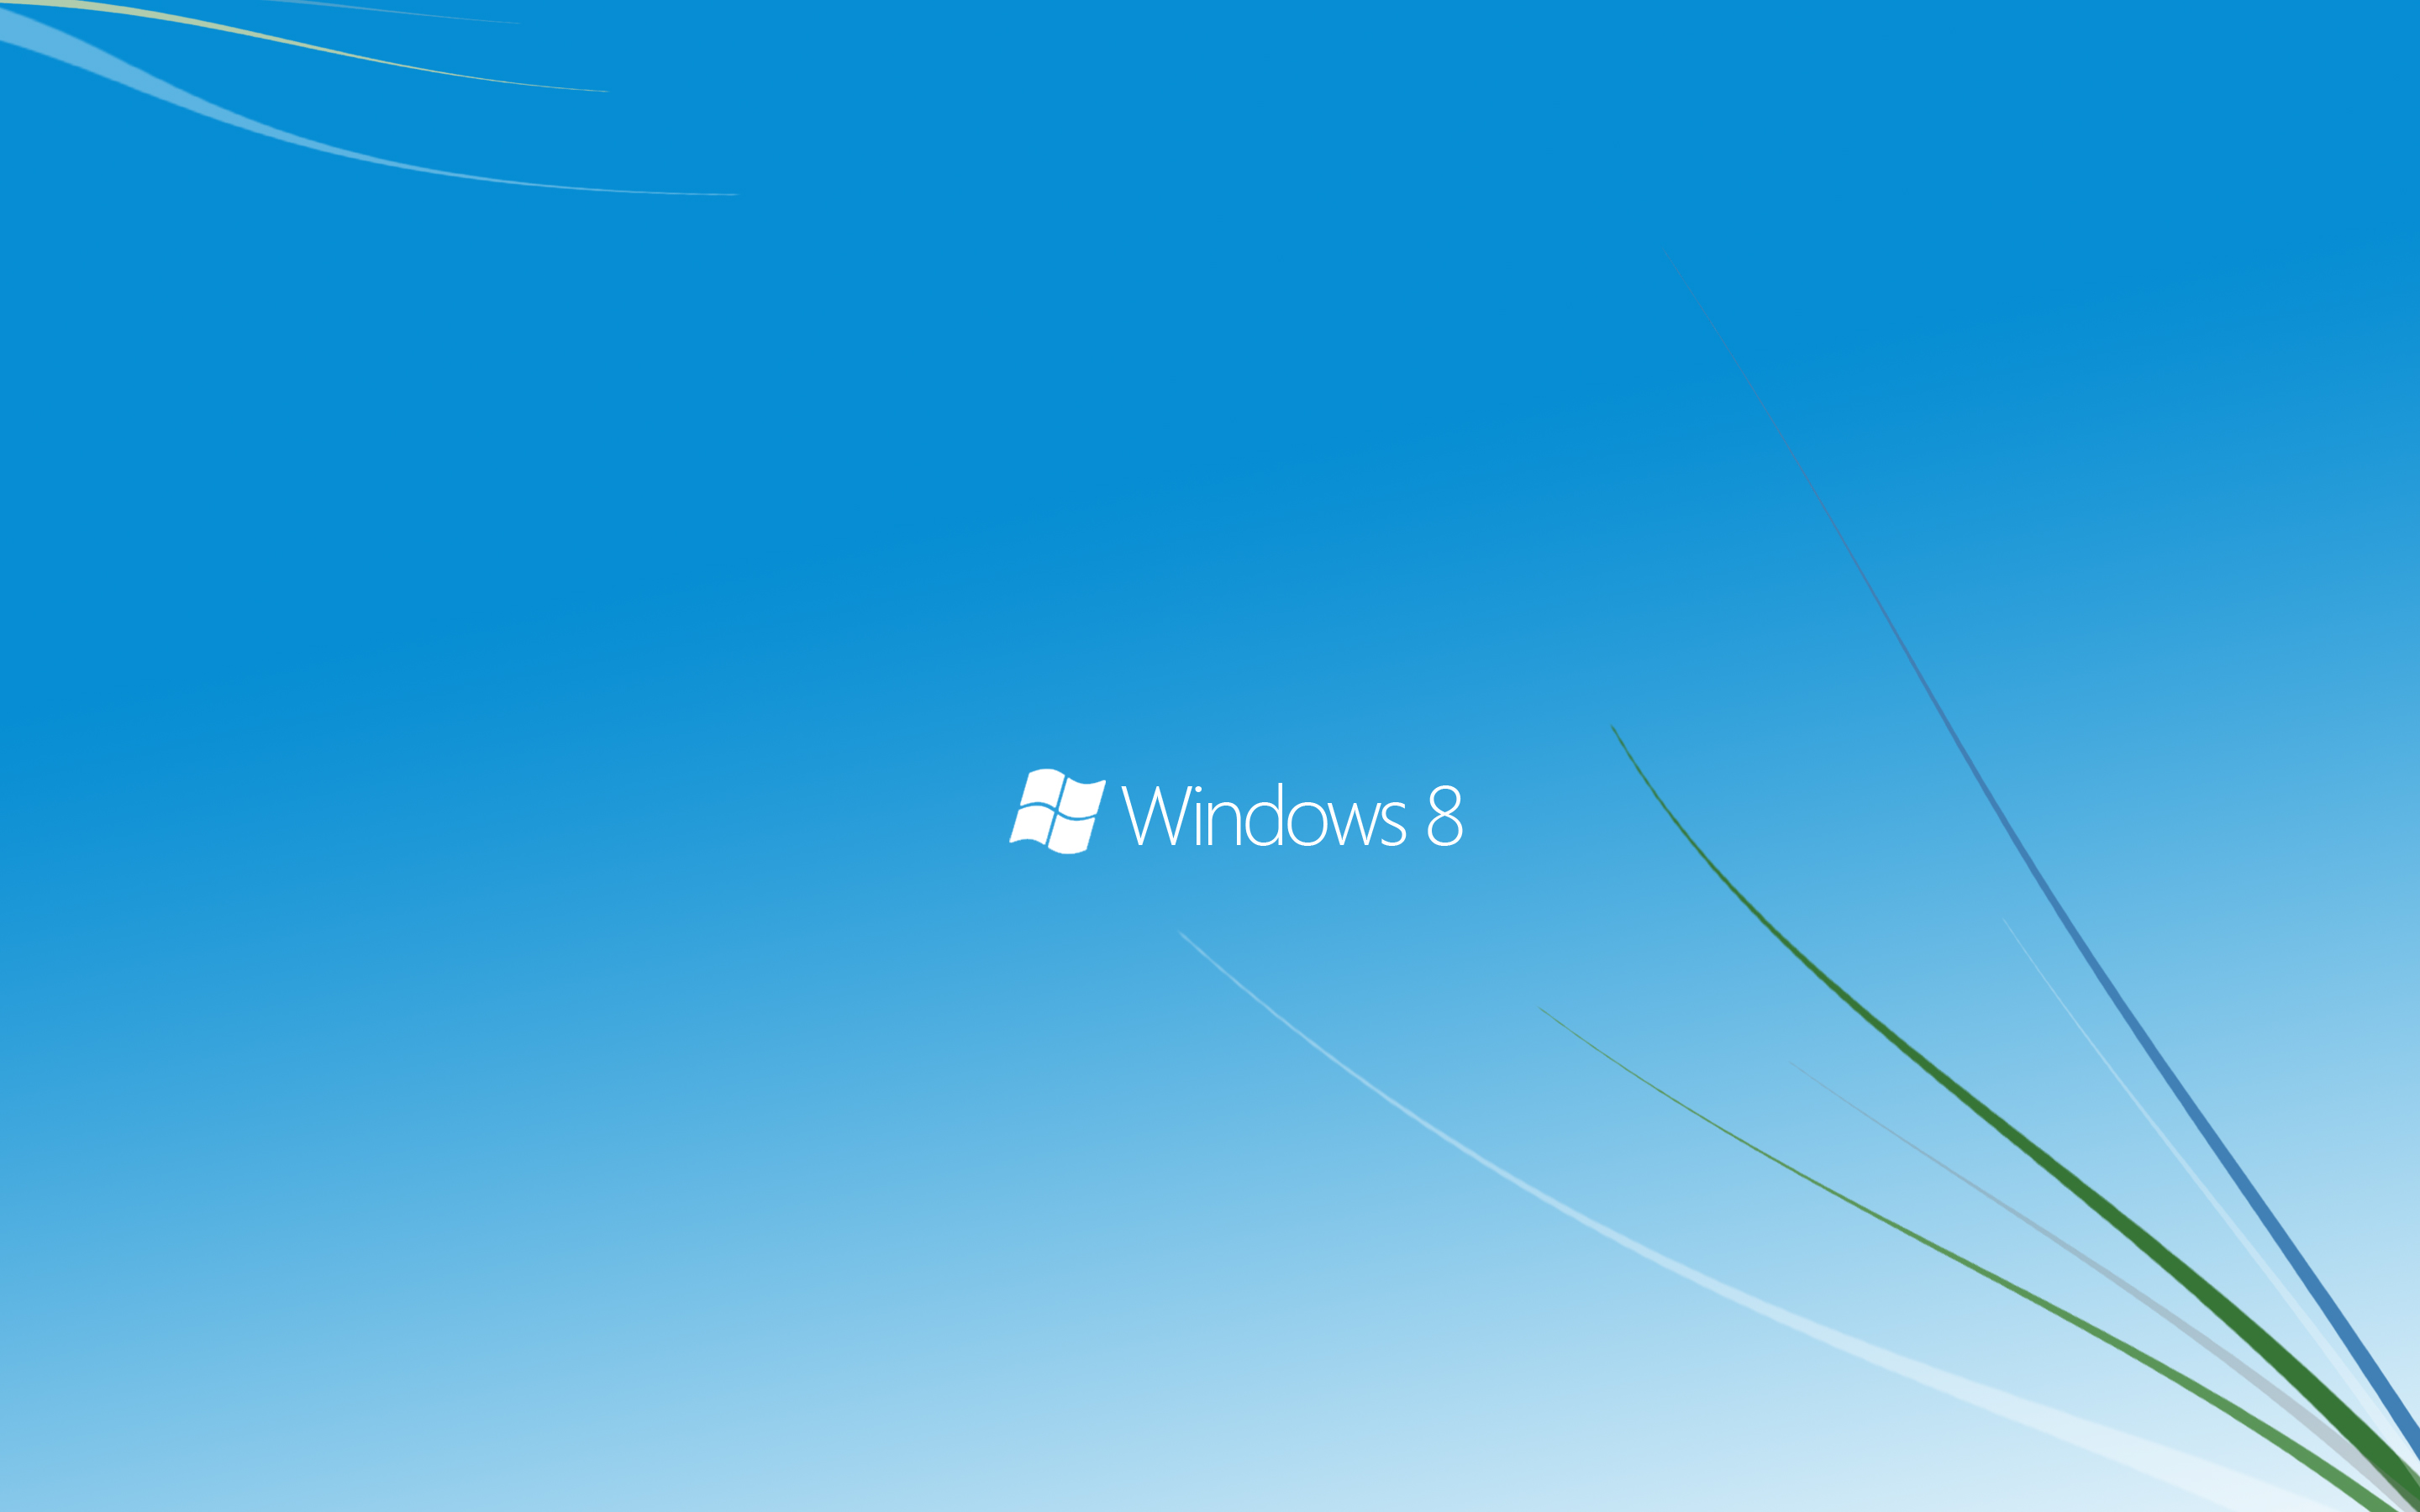 windows 8 full hd wallpapers wallpapers55com   Best Wallpapers for 2880x1800